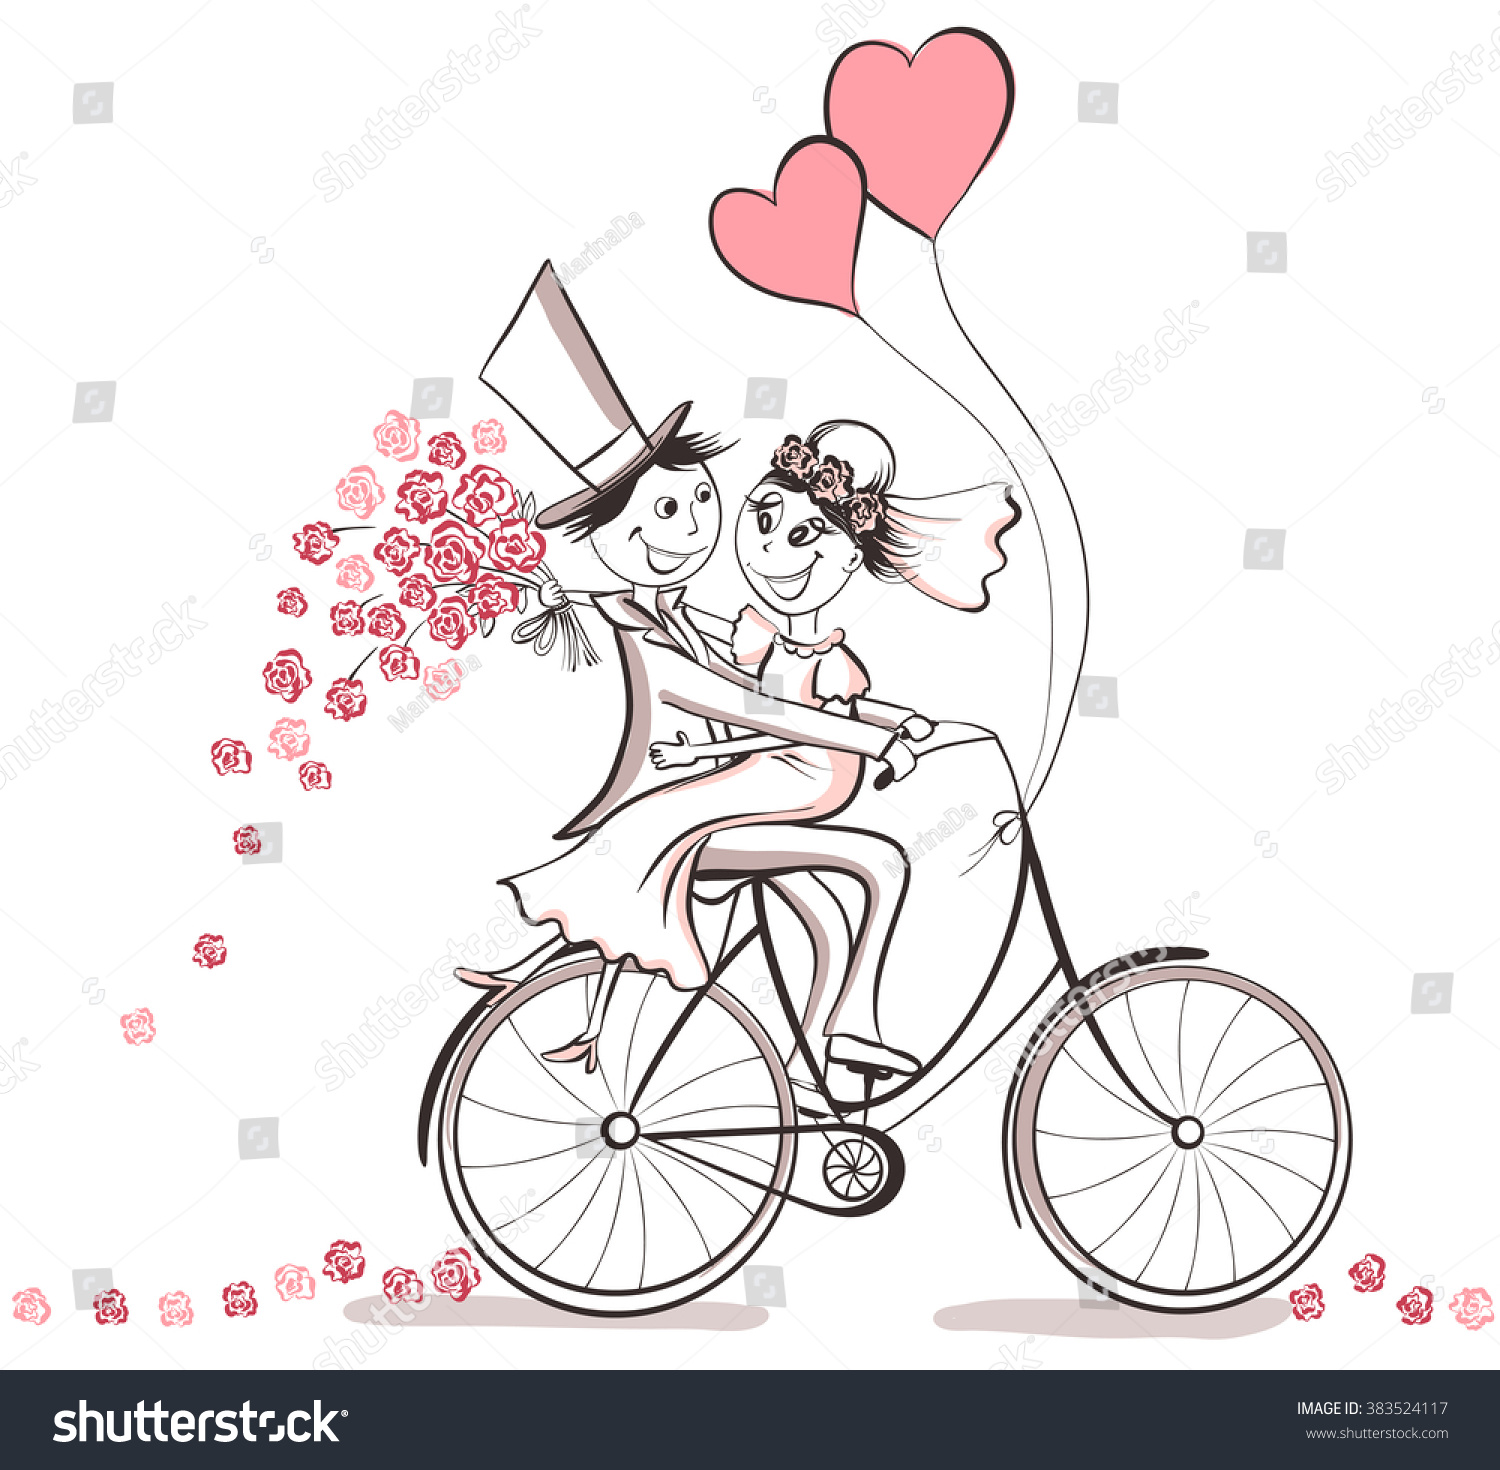 Just Married Hand Drawn Wedding Couple Stock Vector